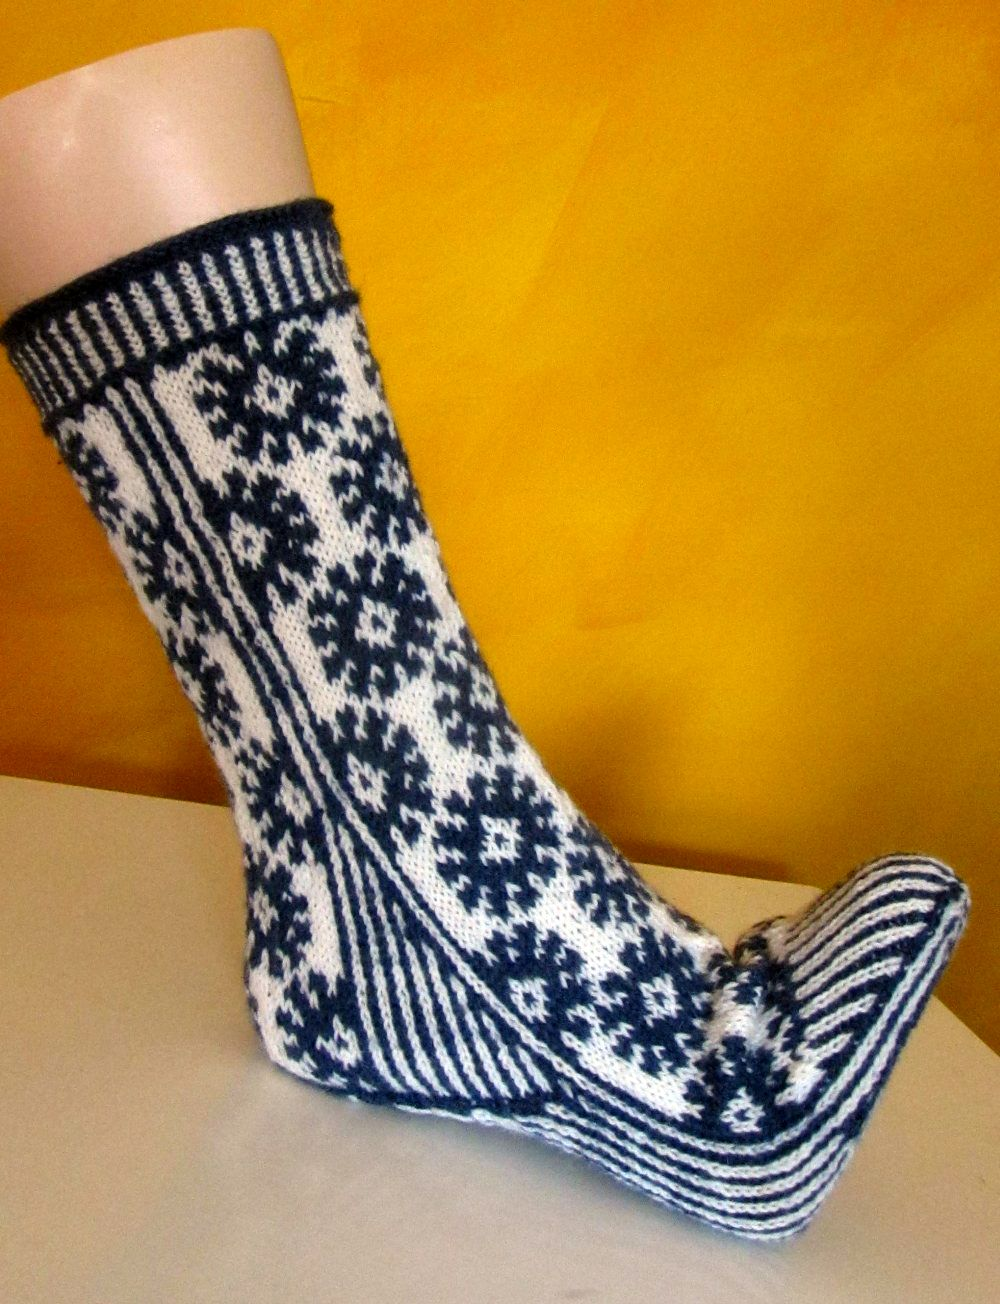 Starry Starry Nights Socks